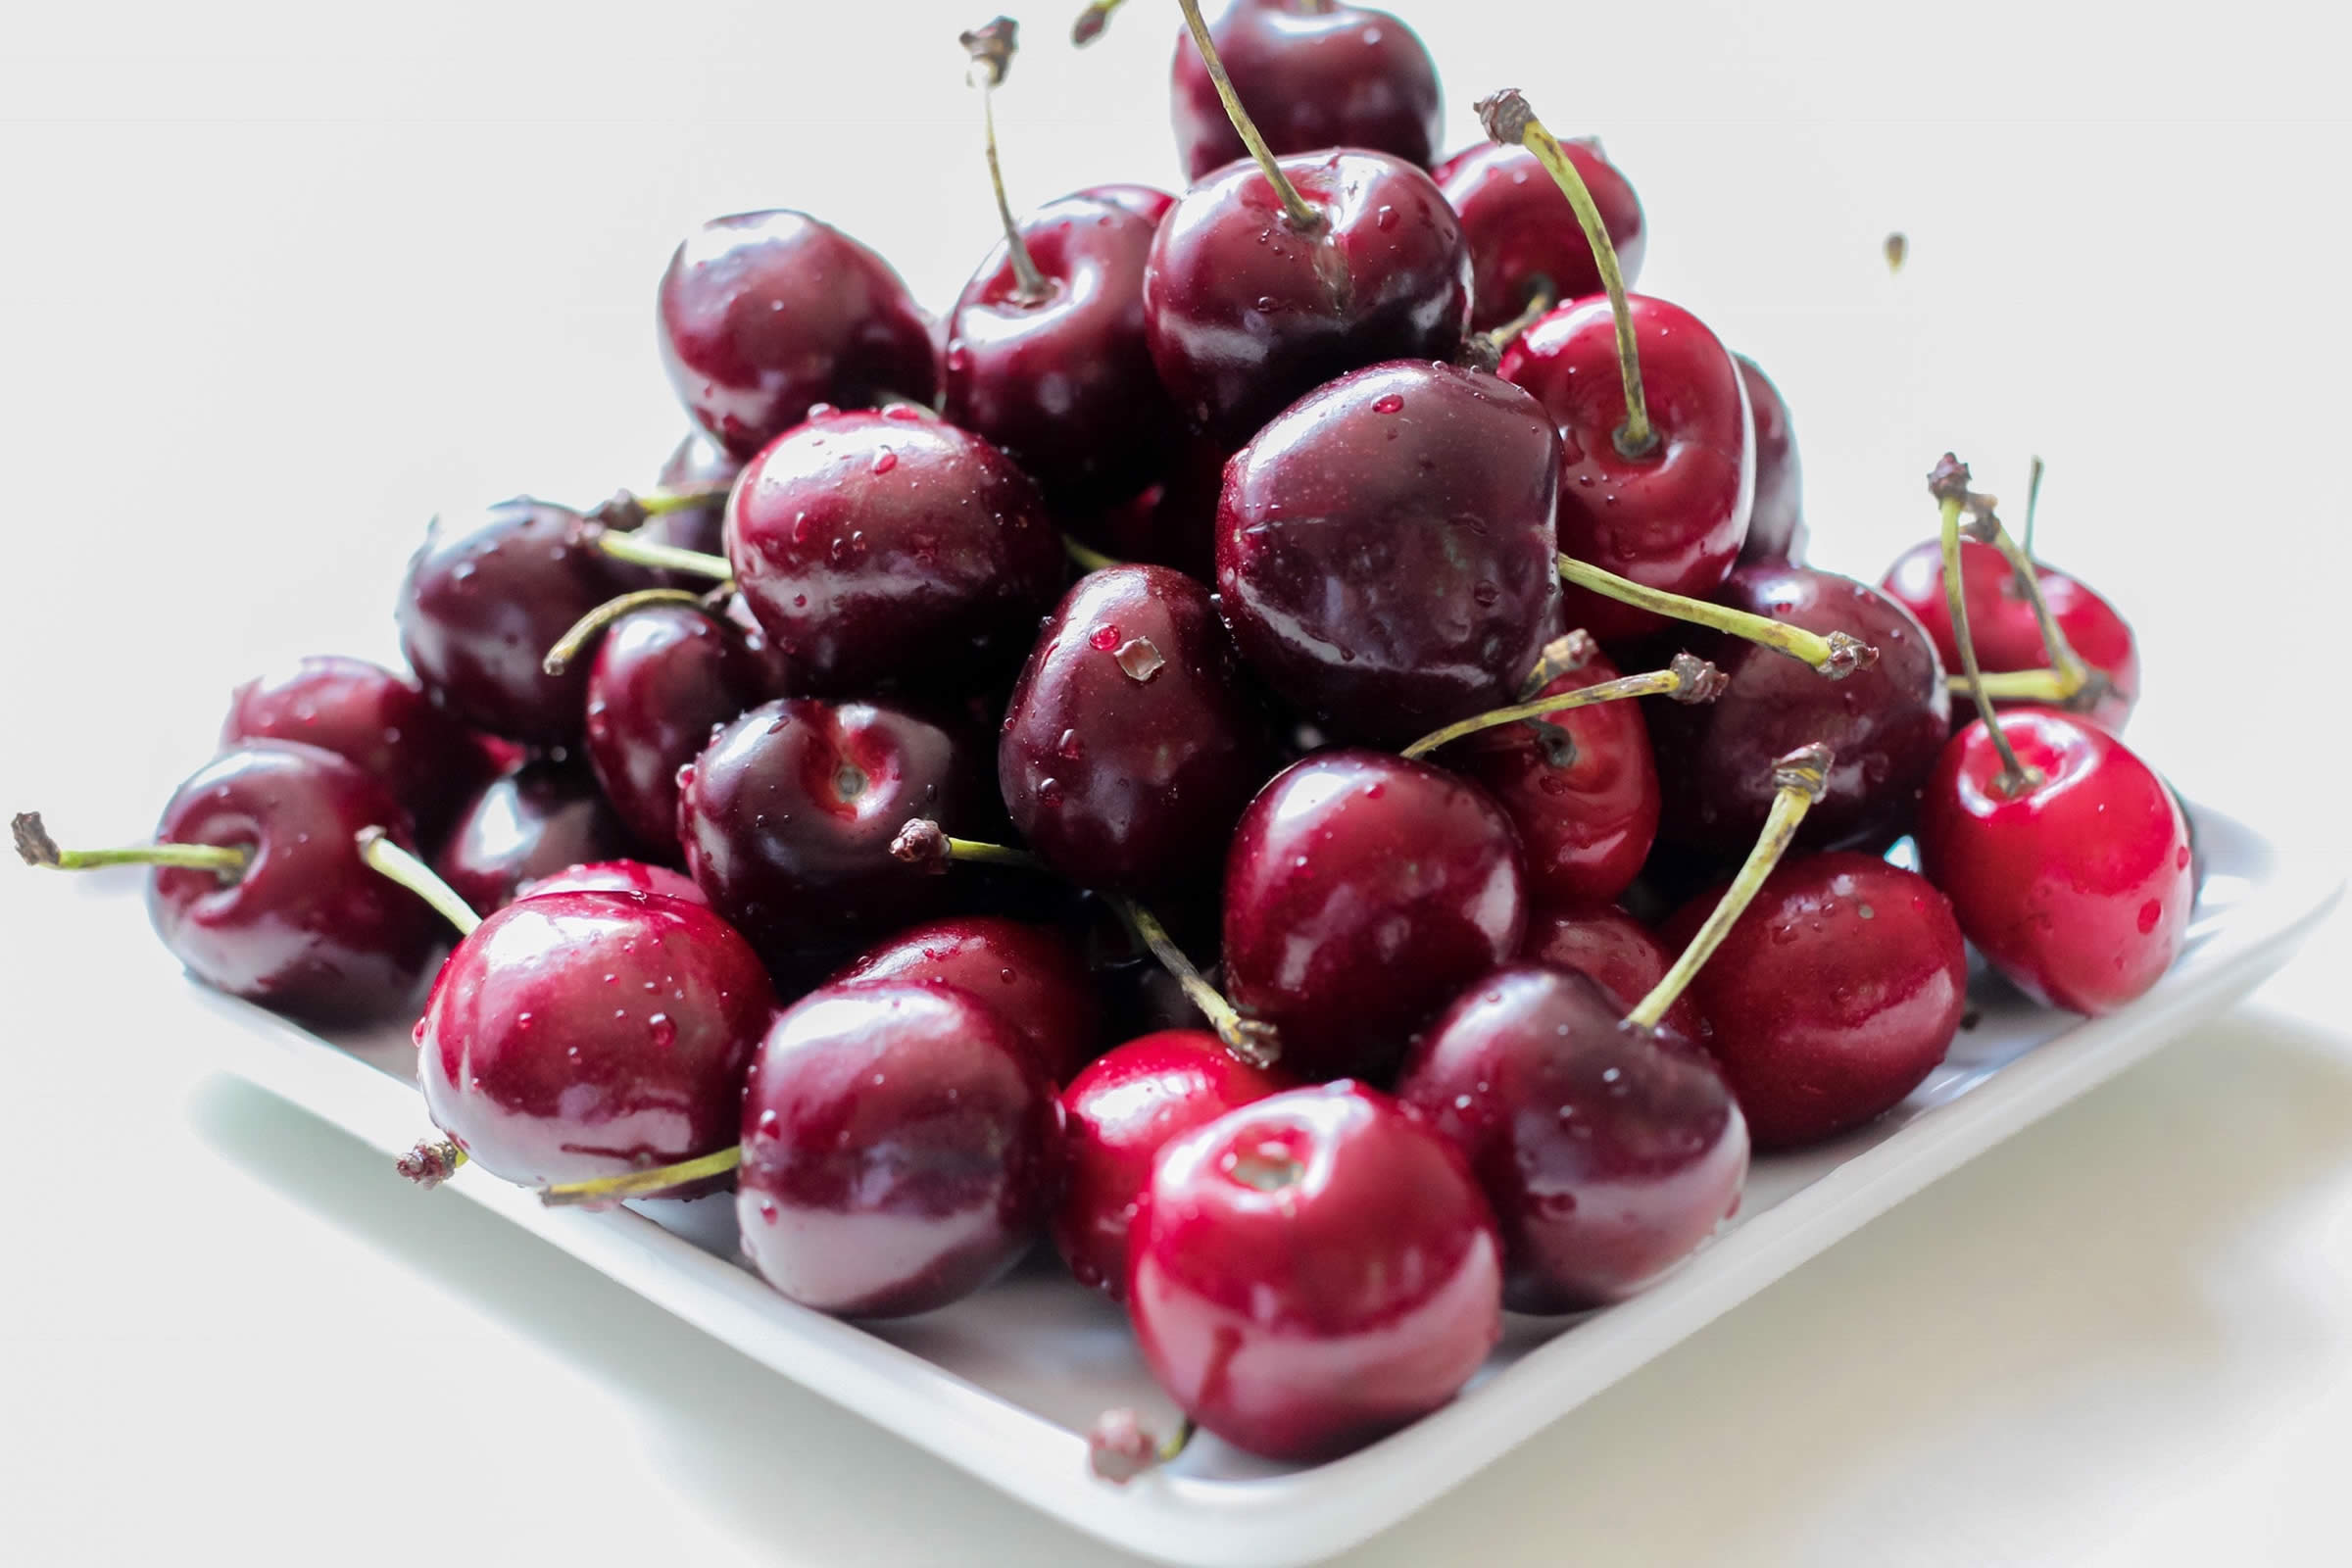 Cherries close-up on plate